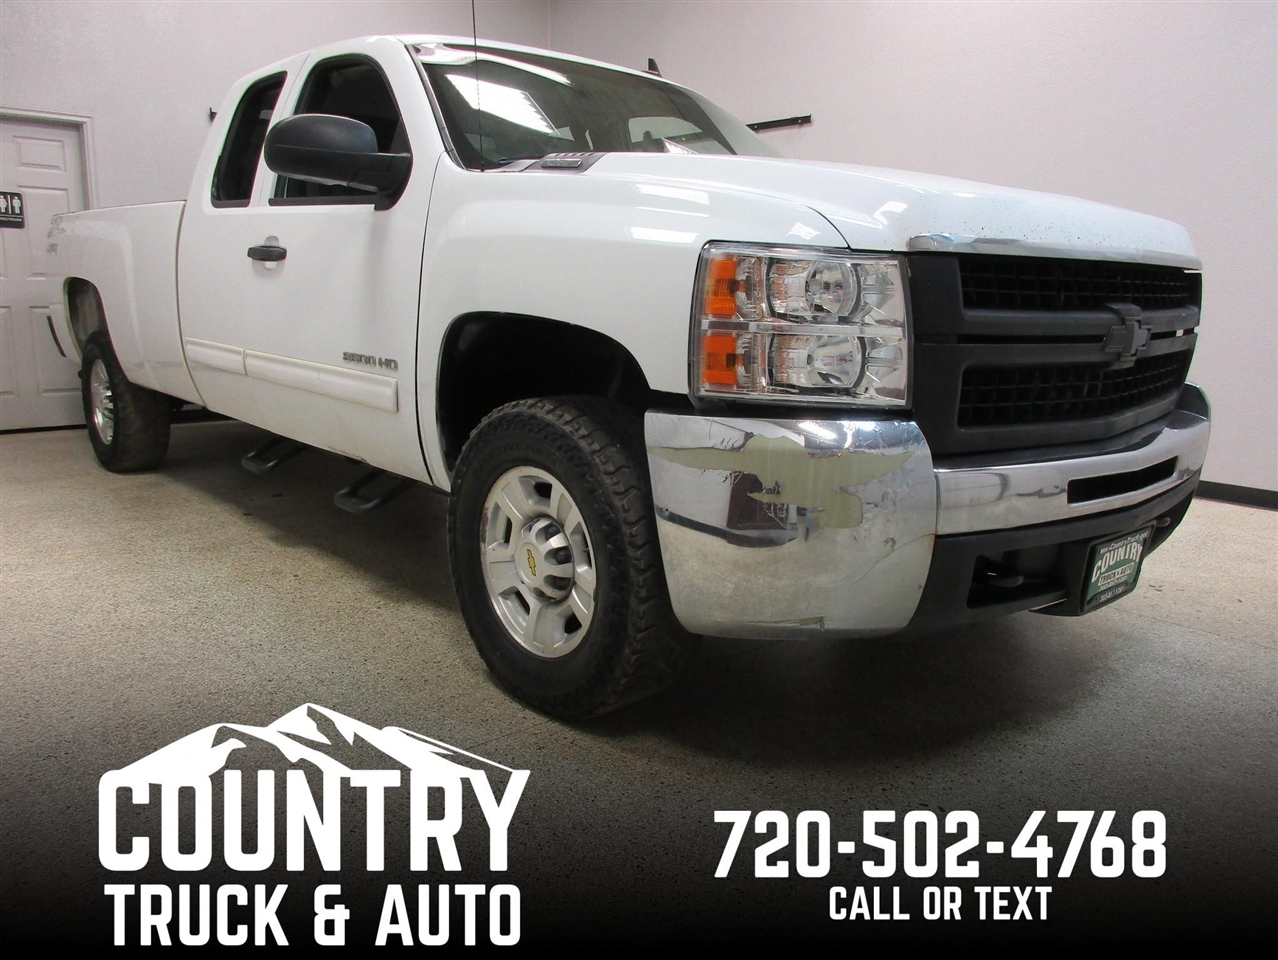 2010 Chevrolet Silverado 2500HD LT Extended Cab Long Bed 4WD